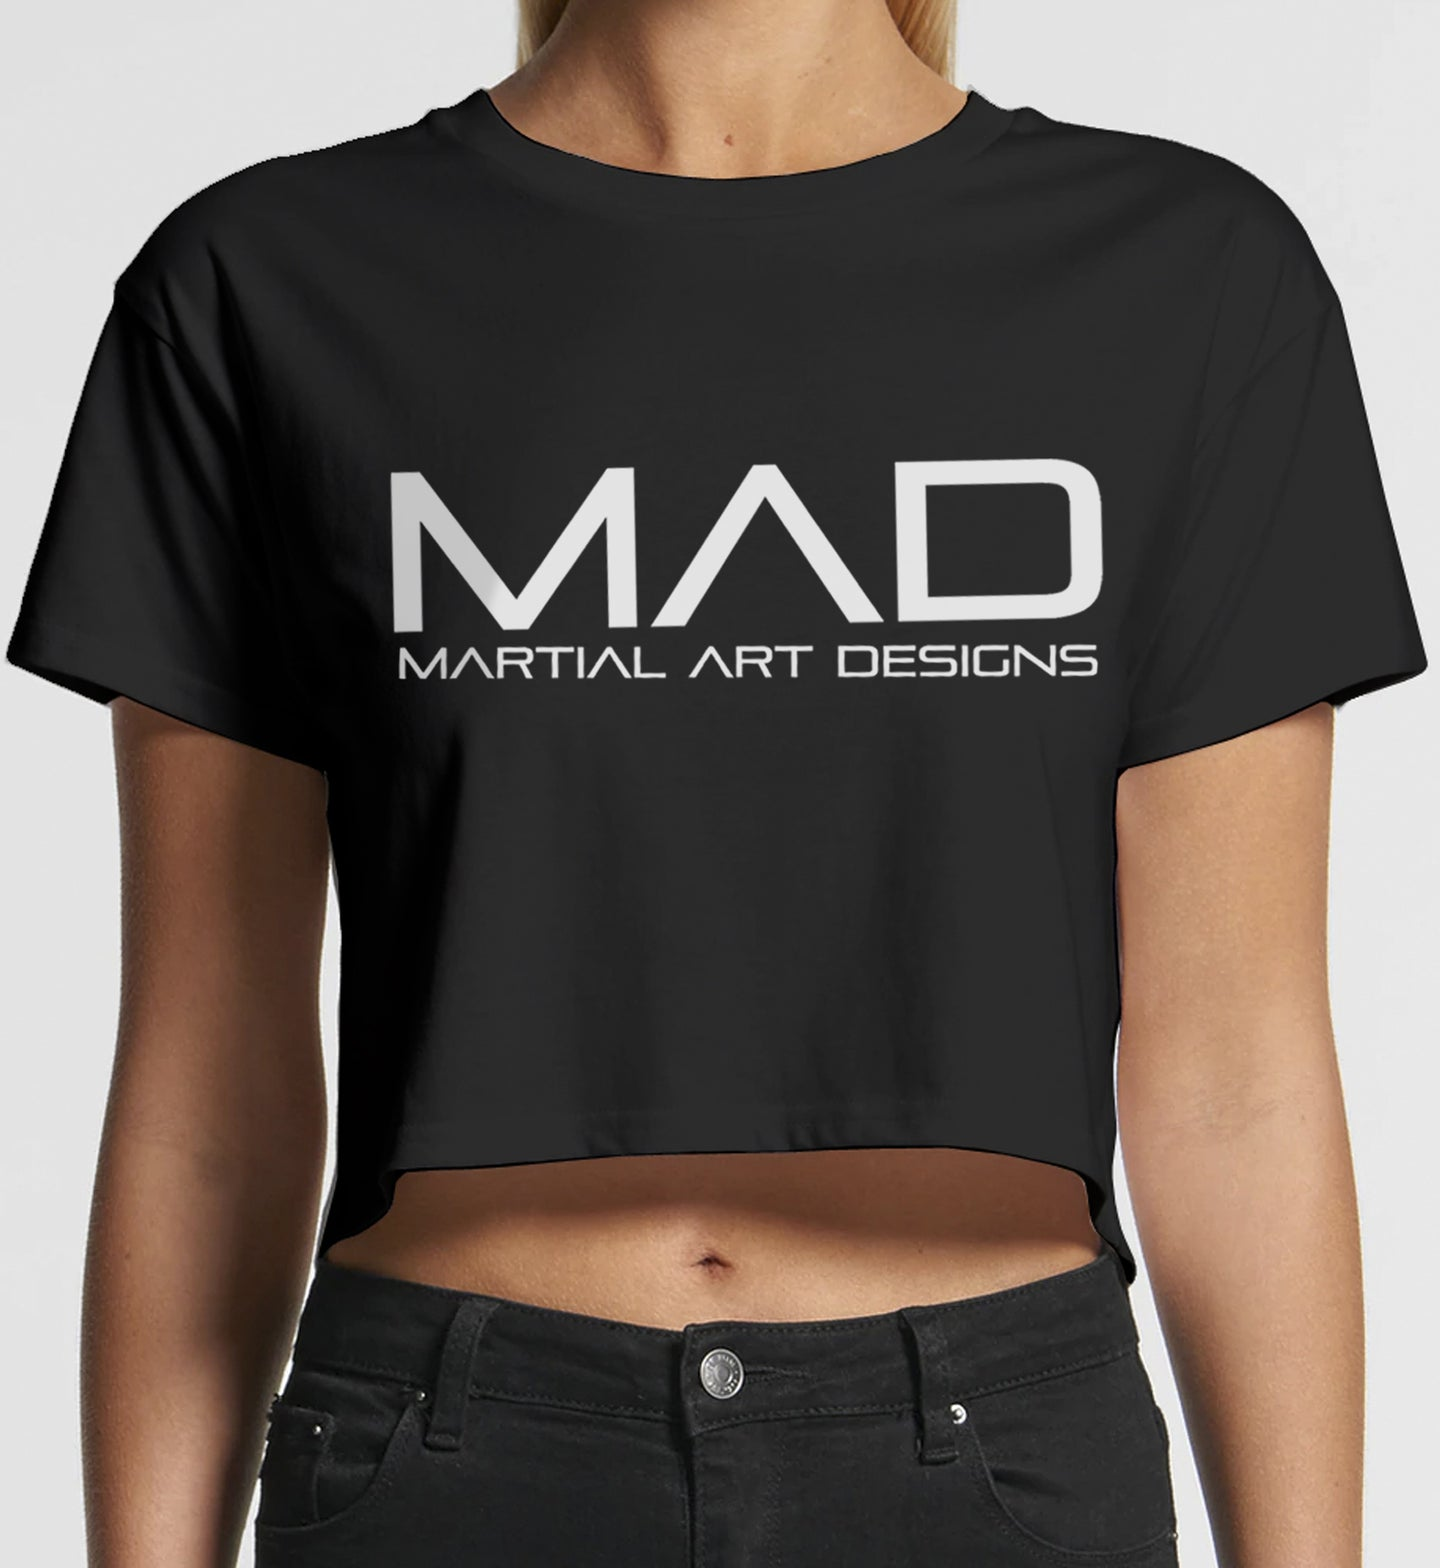 MAD Martial Art Designs - WOMEN'S 4062 CROPPED TEE